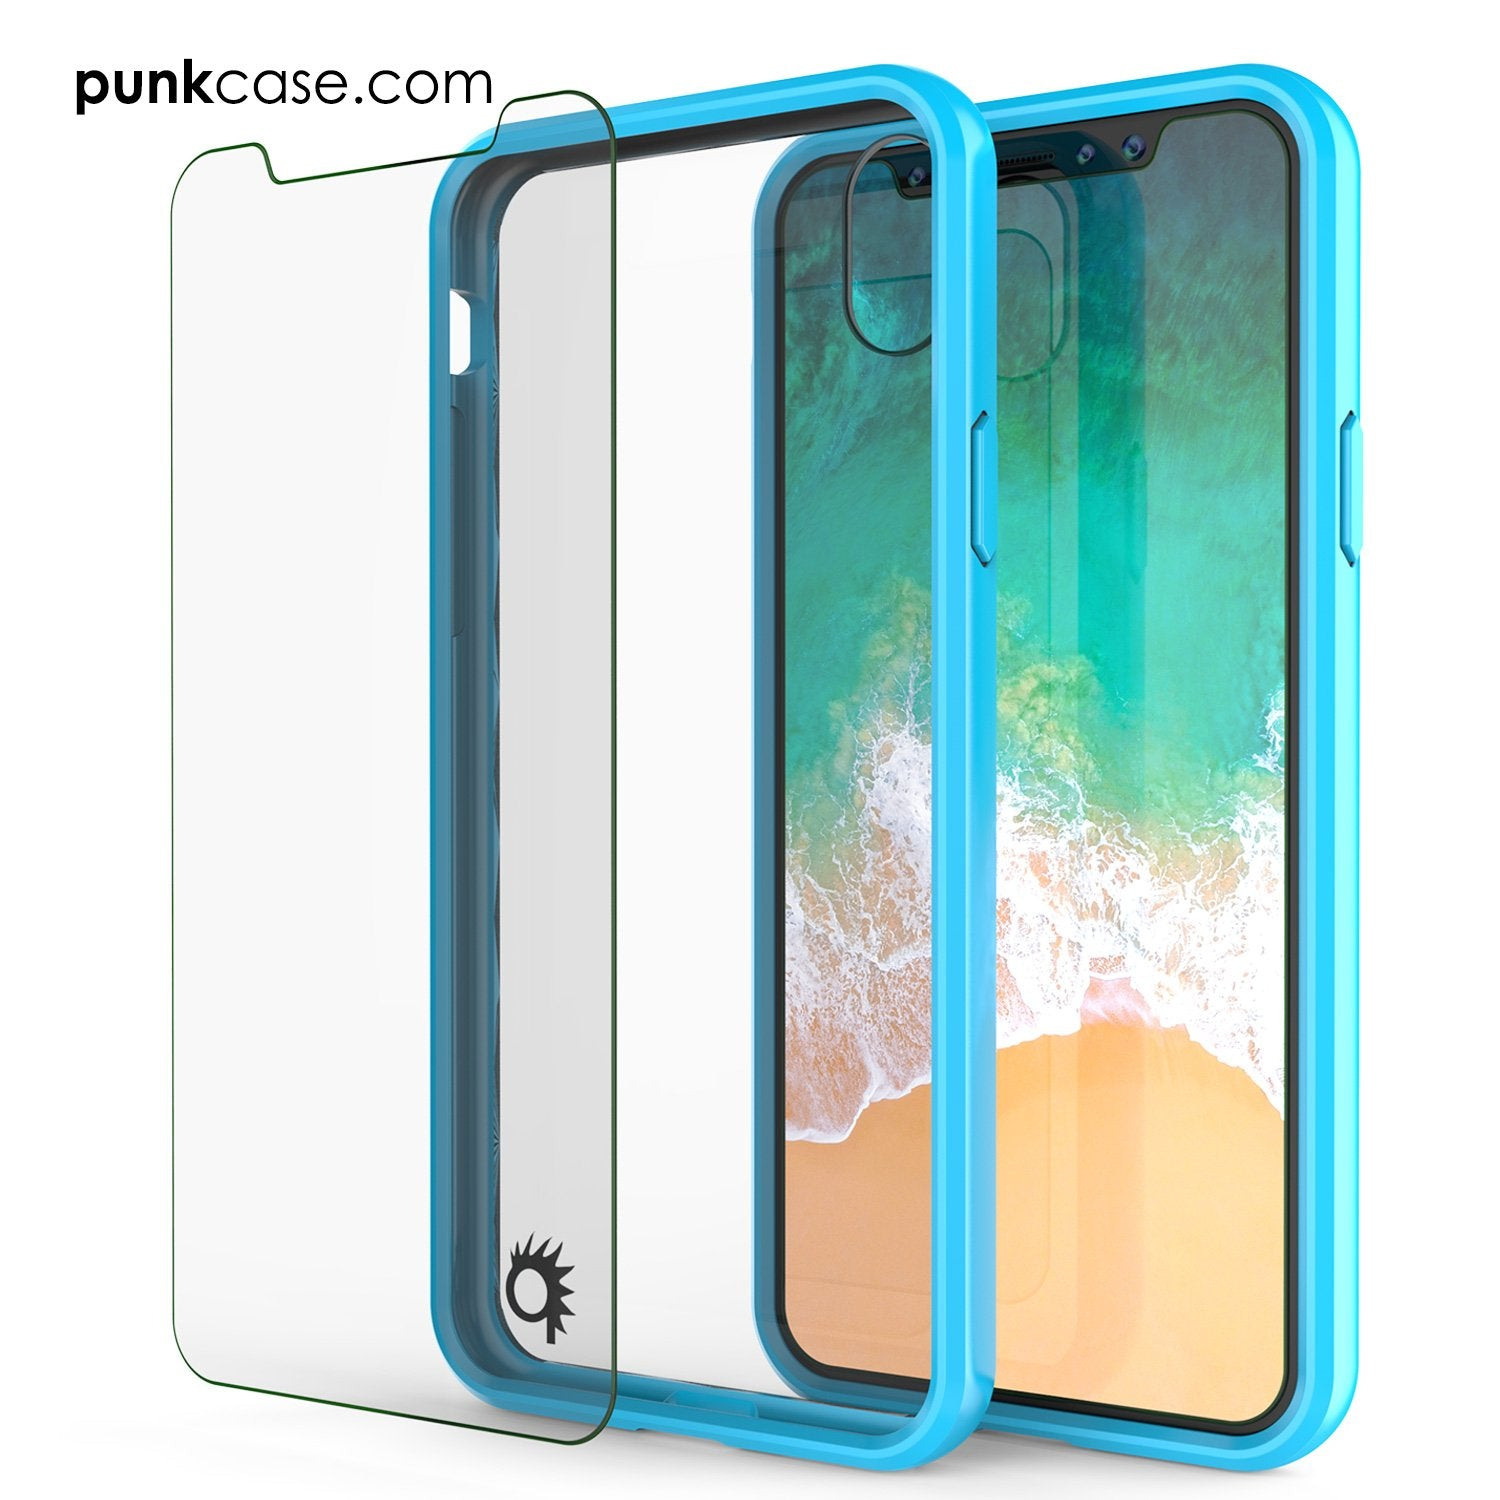 iPhone X Case, PUNKcase [LUCID 2.0 Series] [Slim Fit] Armor Cover W/Integrated Anti-Shock System & Tempered Glass Screen Protector [Light Blue]